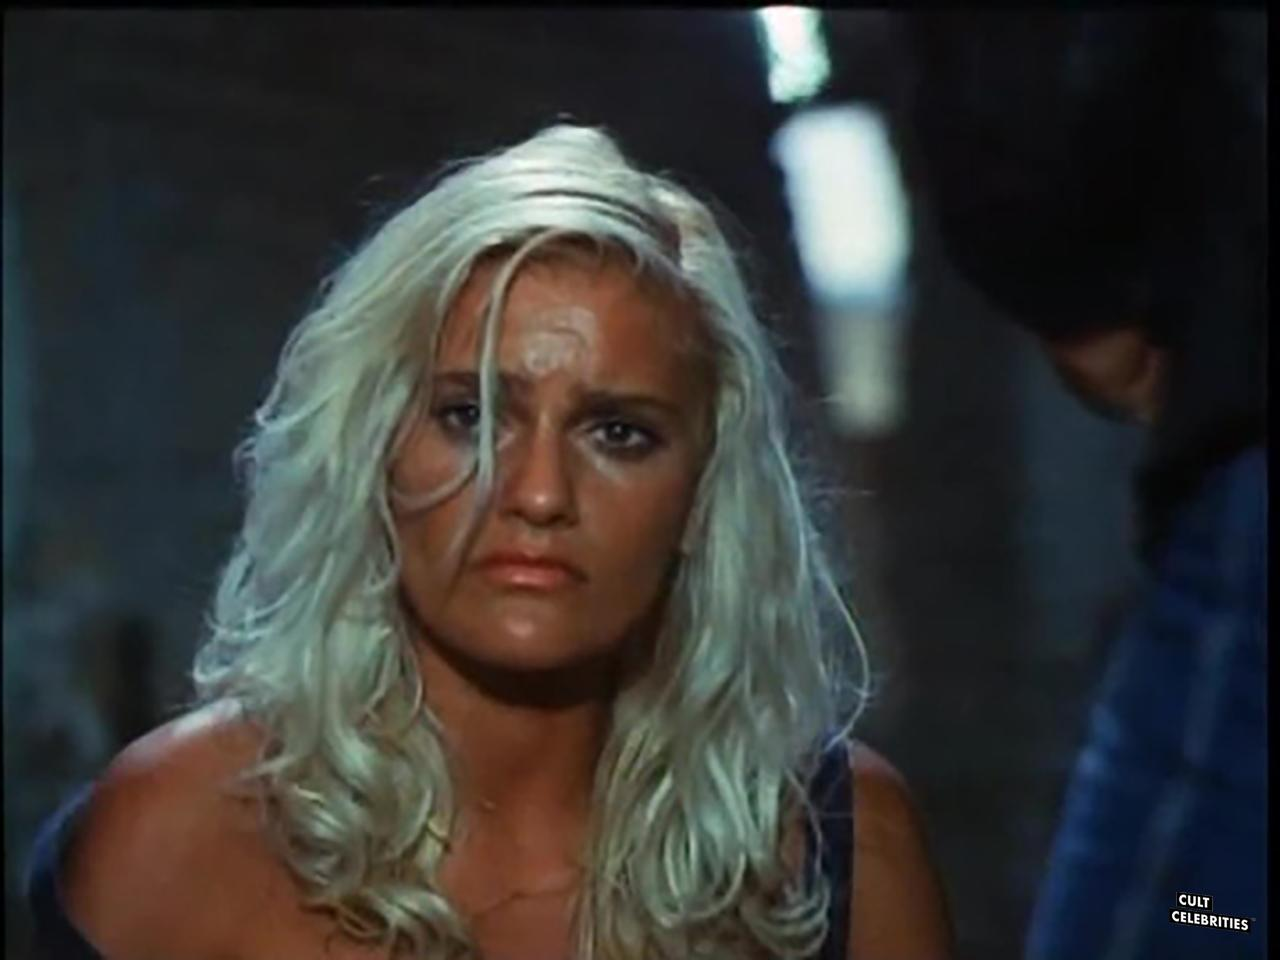 Sabrina Siani in 2020 Texas Gladiators (1982)